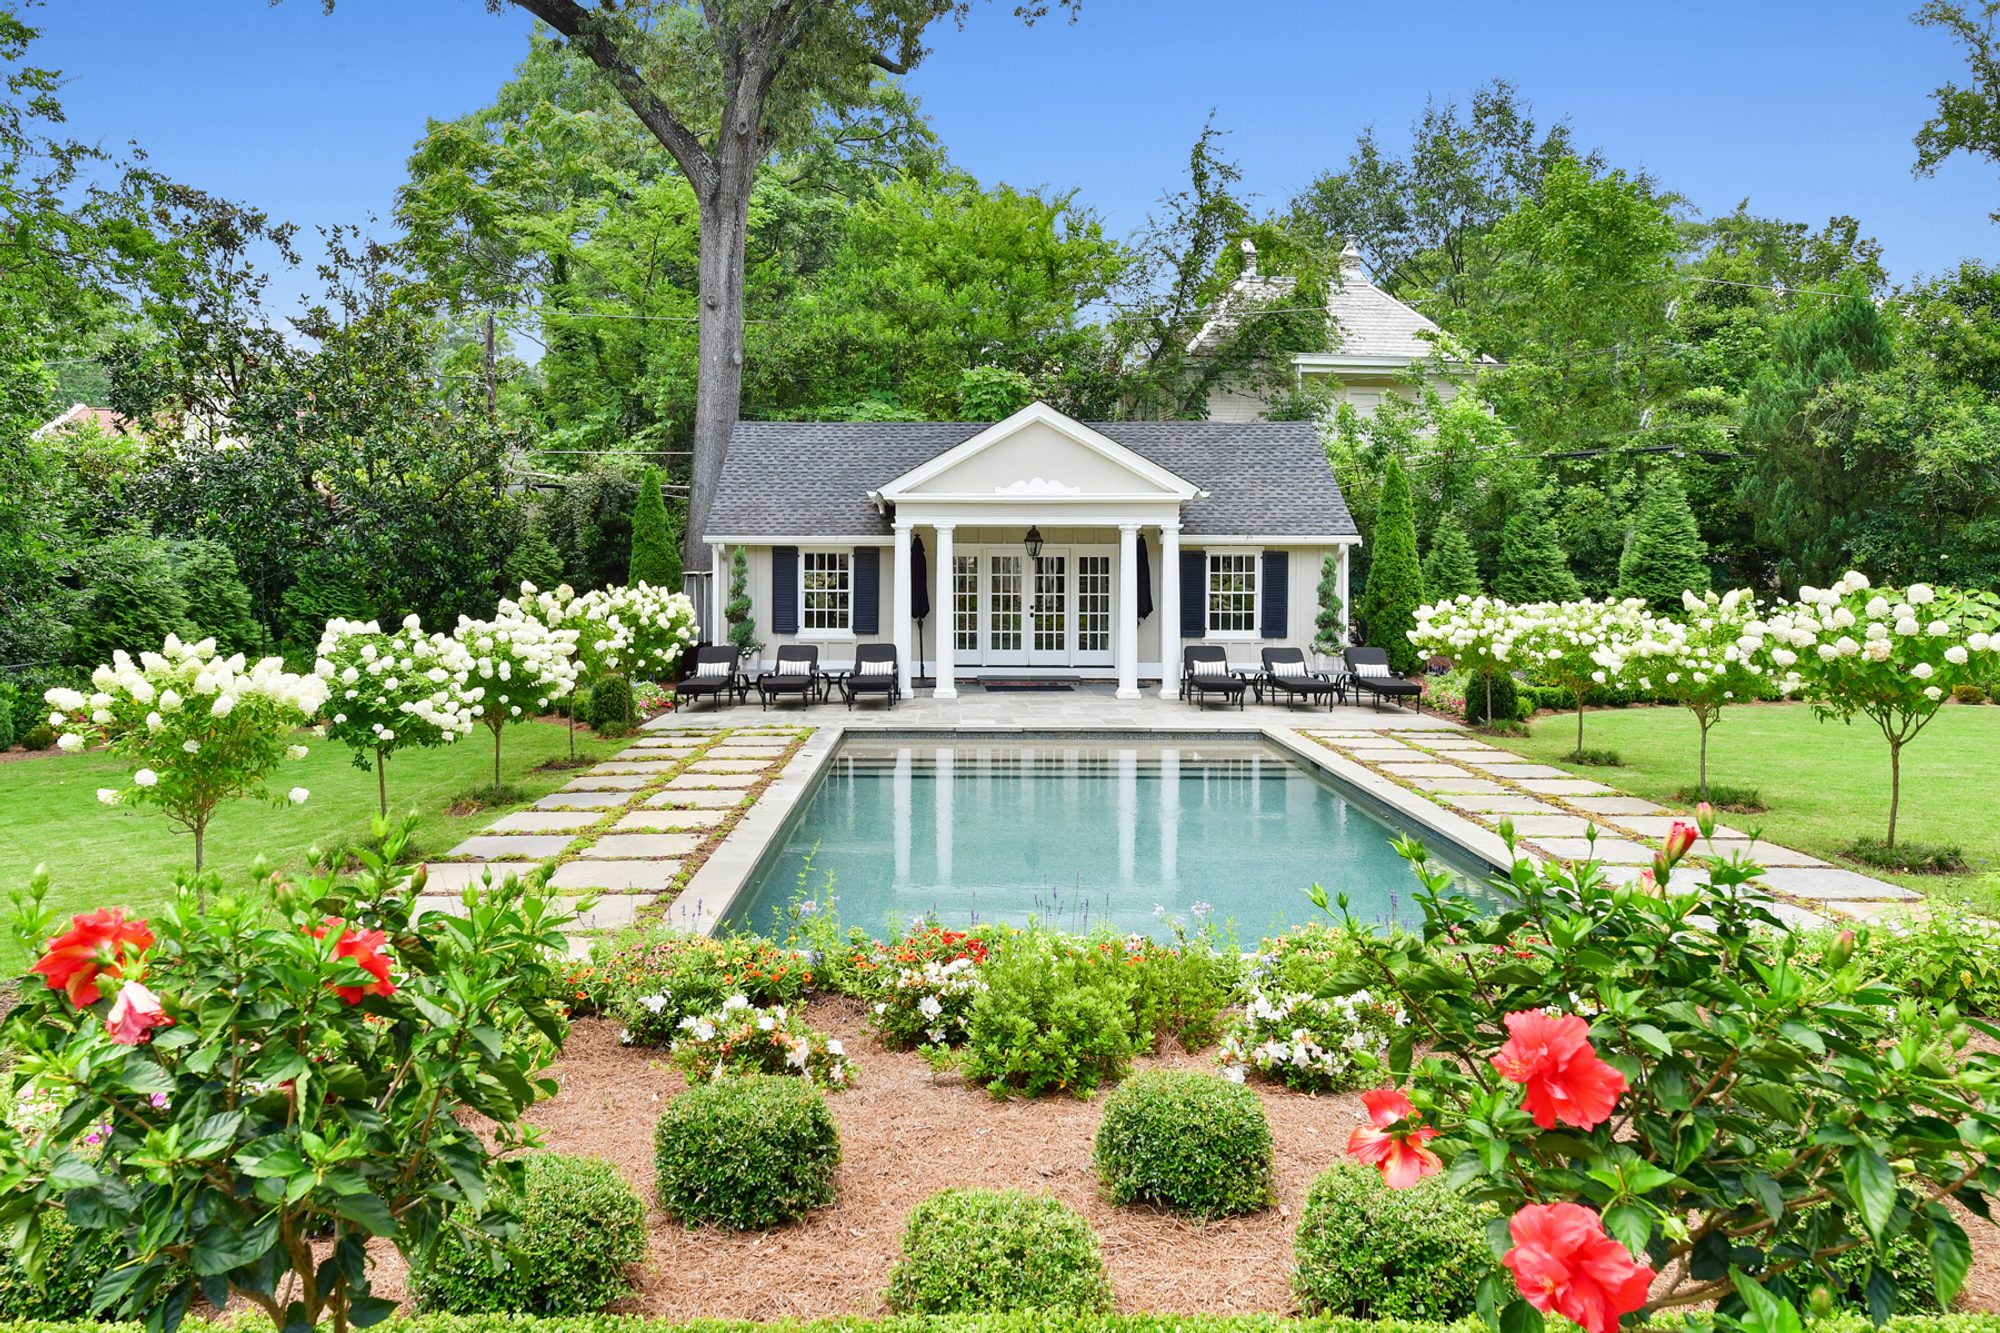 classic Hamptons style pool house design with cream siding, white trim and blue shutters